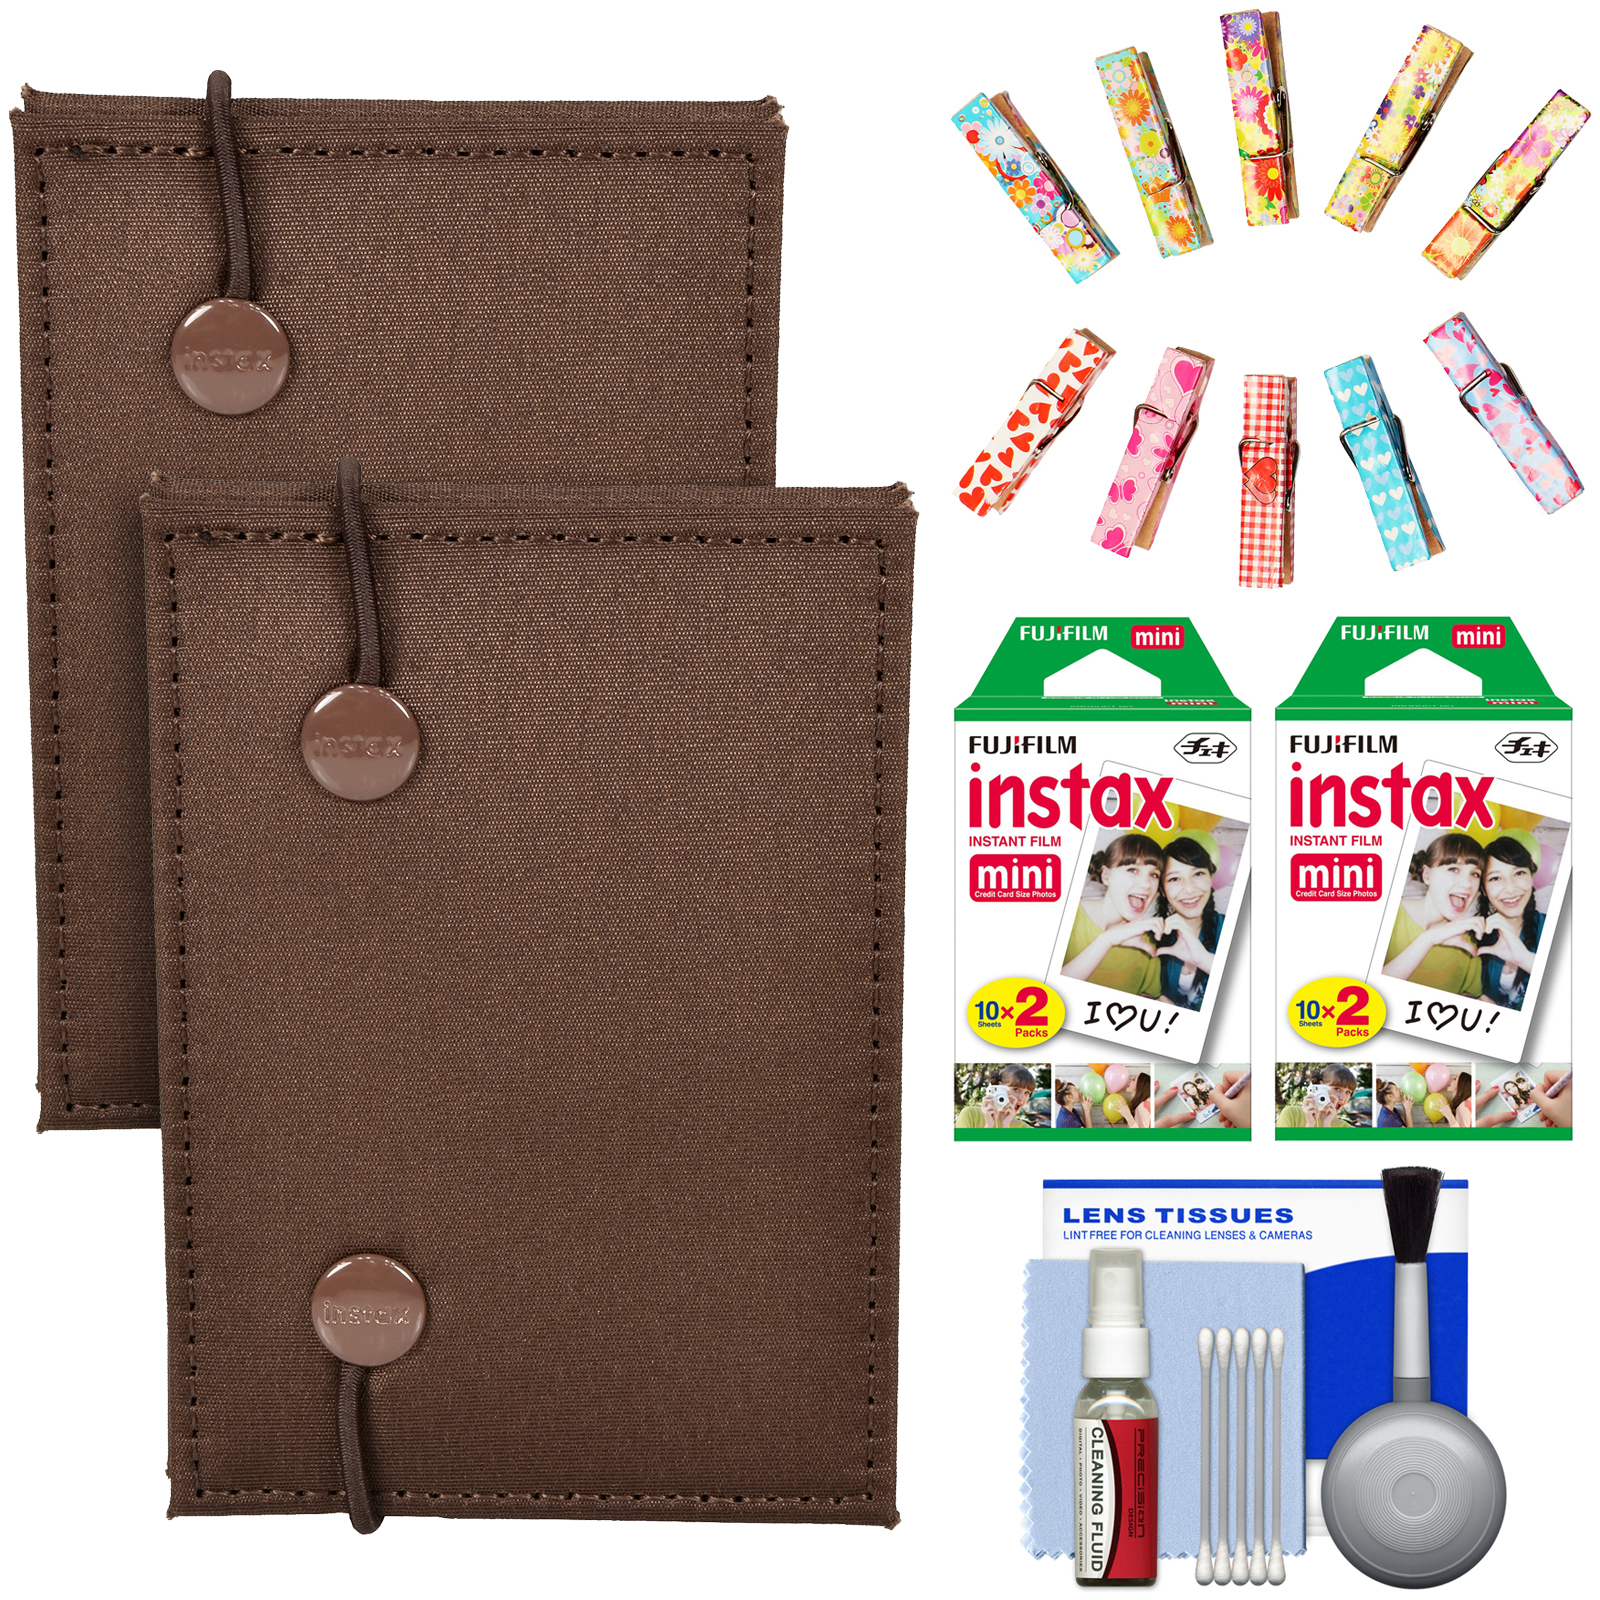 Fujifilm Instax Mini Accordion Photo Album (Green) (2 Pack) with 40 Twin Prints + Wood Peg Clips + Cleaning Kit